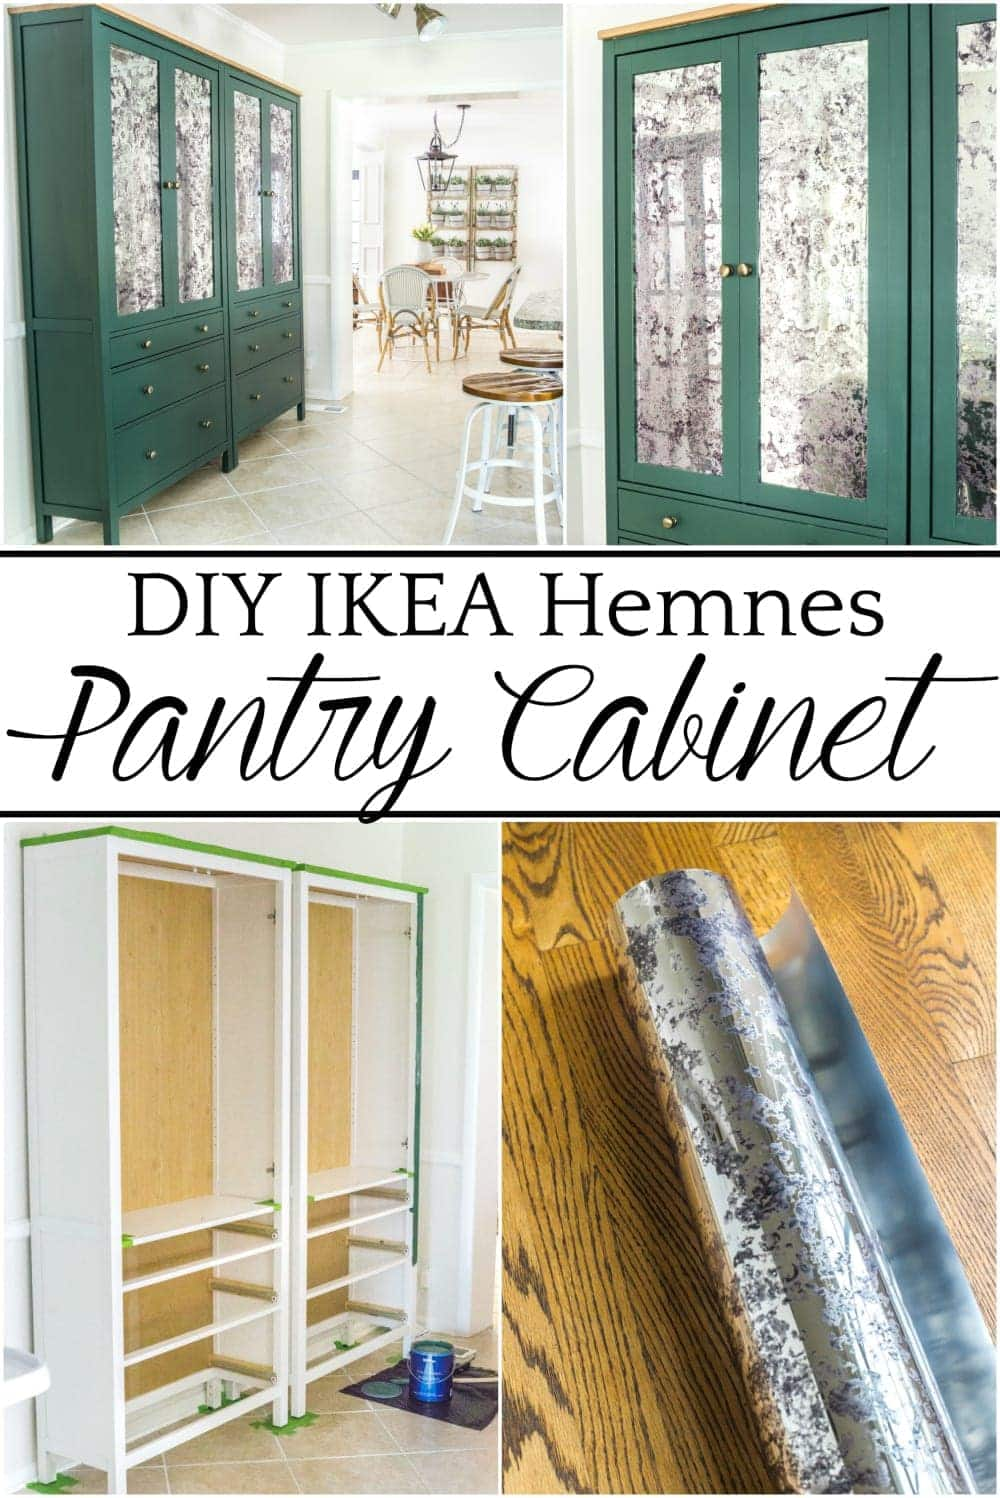 DIY IKEA Hemnes Pantry Cabinet   blesserhouse.com - How to turn an IKEA Hemnes cabinet in a pantry and give it a custom high-end look with antique mirror window film.